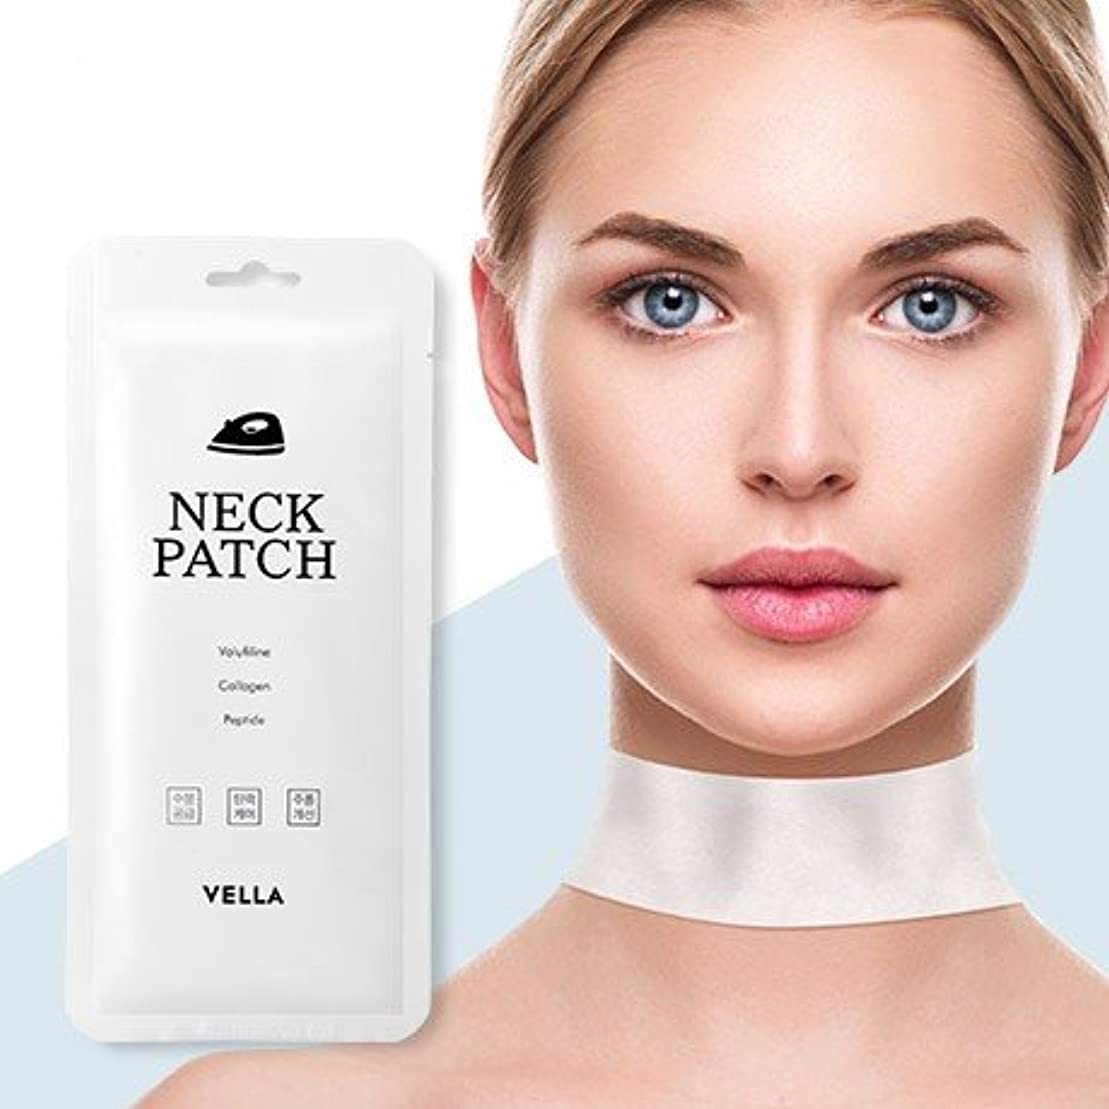 特派員ペナルティ免除Vella Neck Patch 5Pcs/Neck Wrinkle Care/Korea Cosmetics